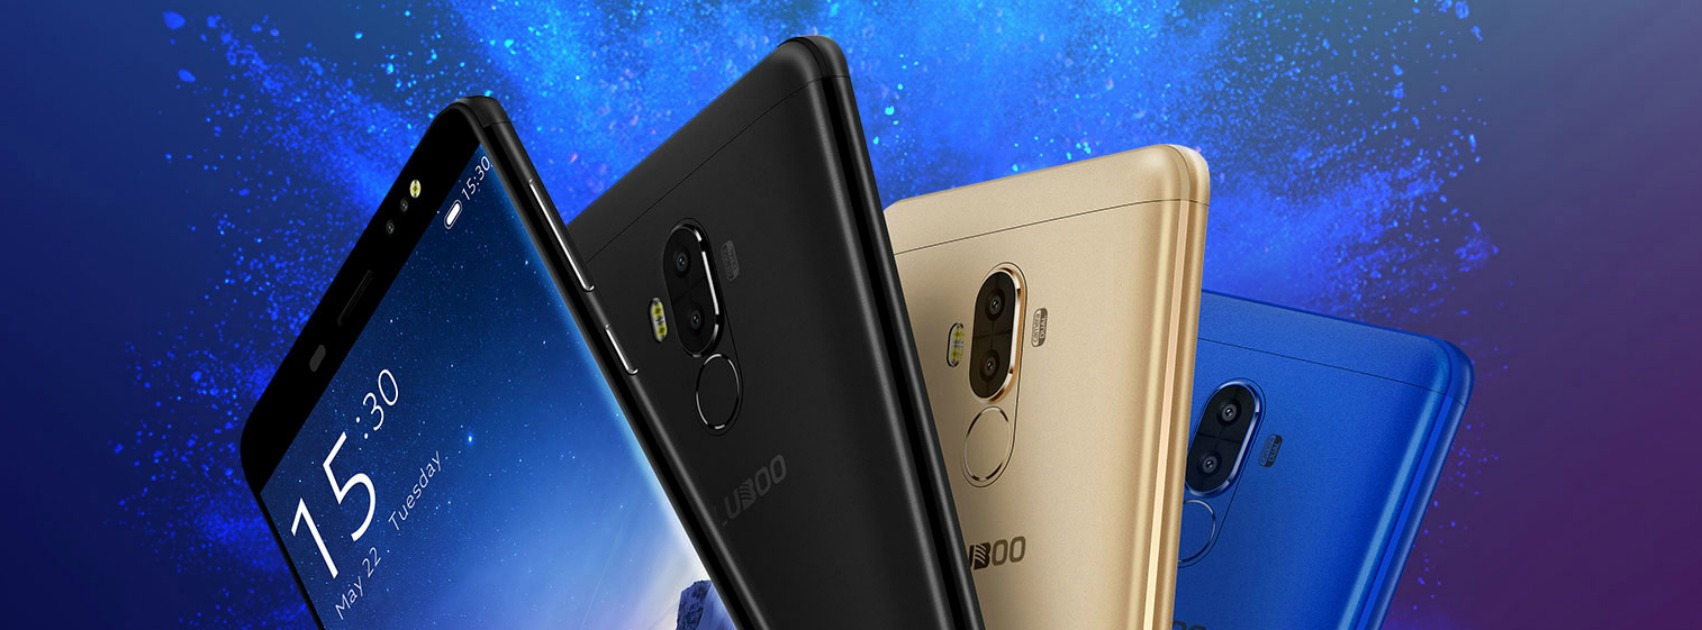 dual camera bluboo d1 preview androidguys